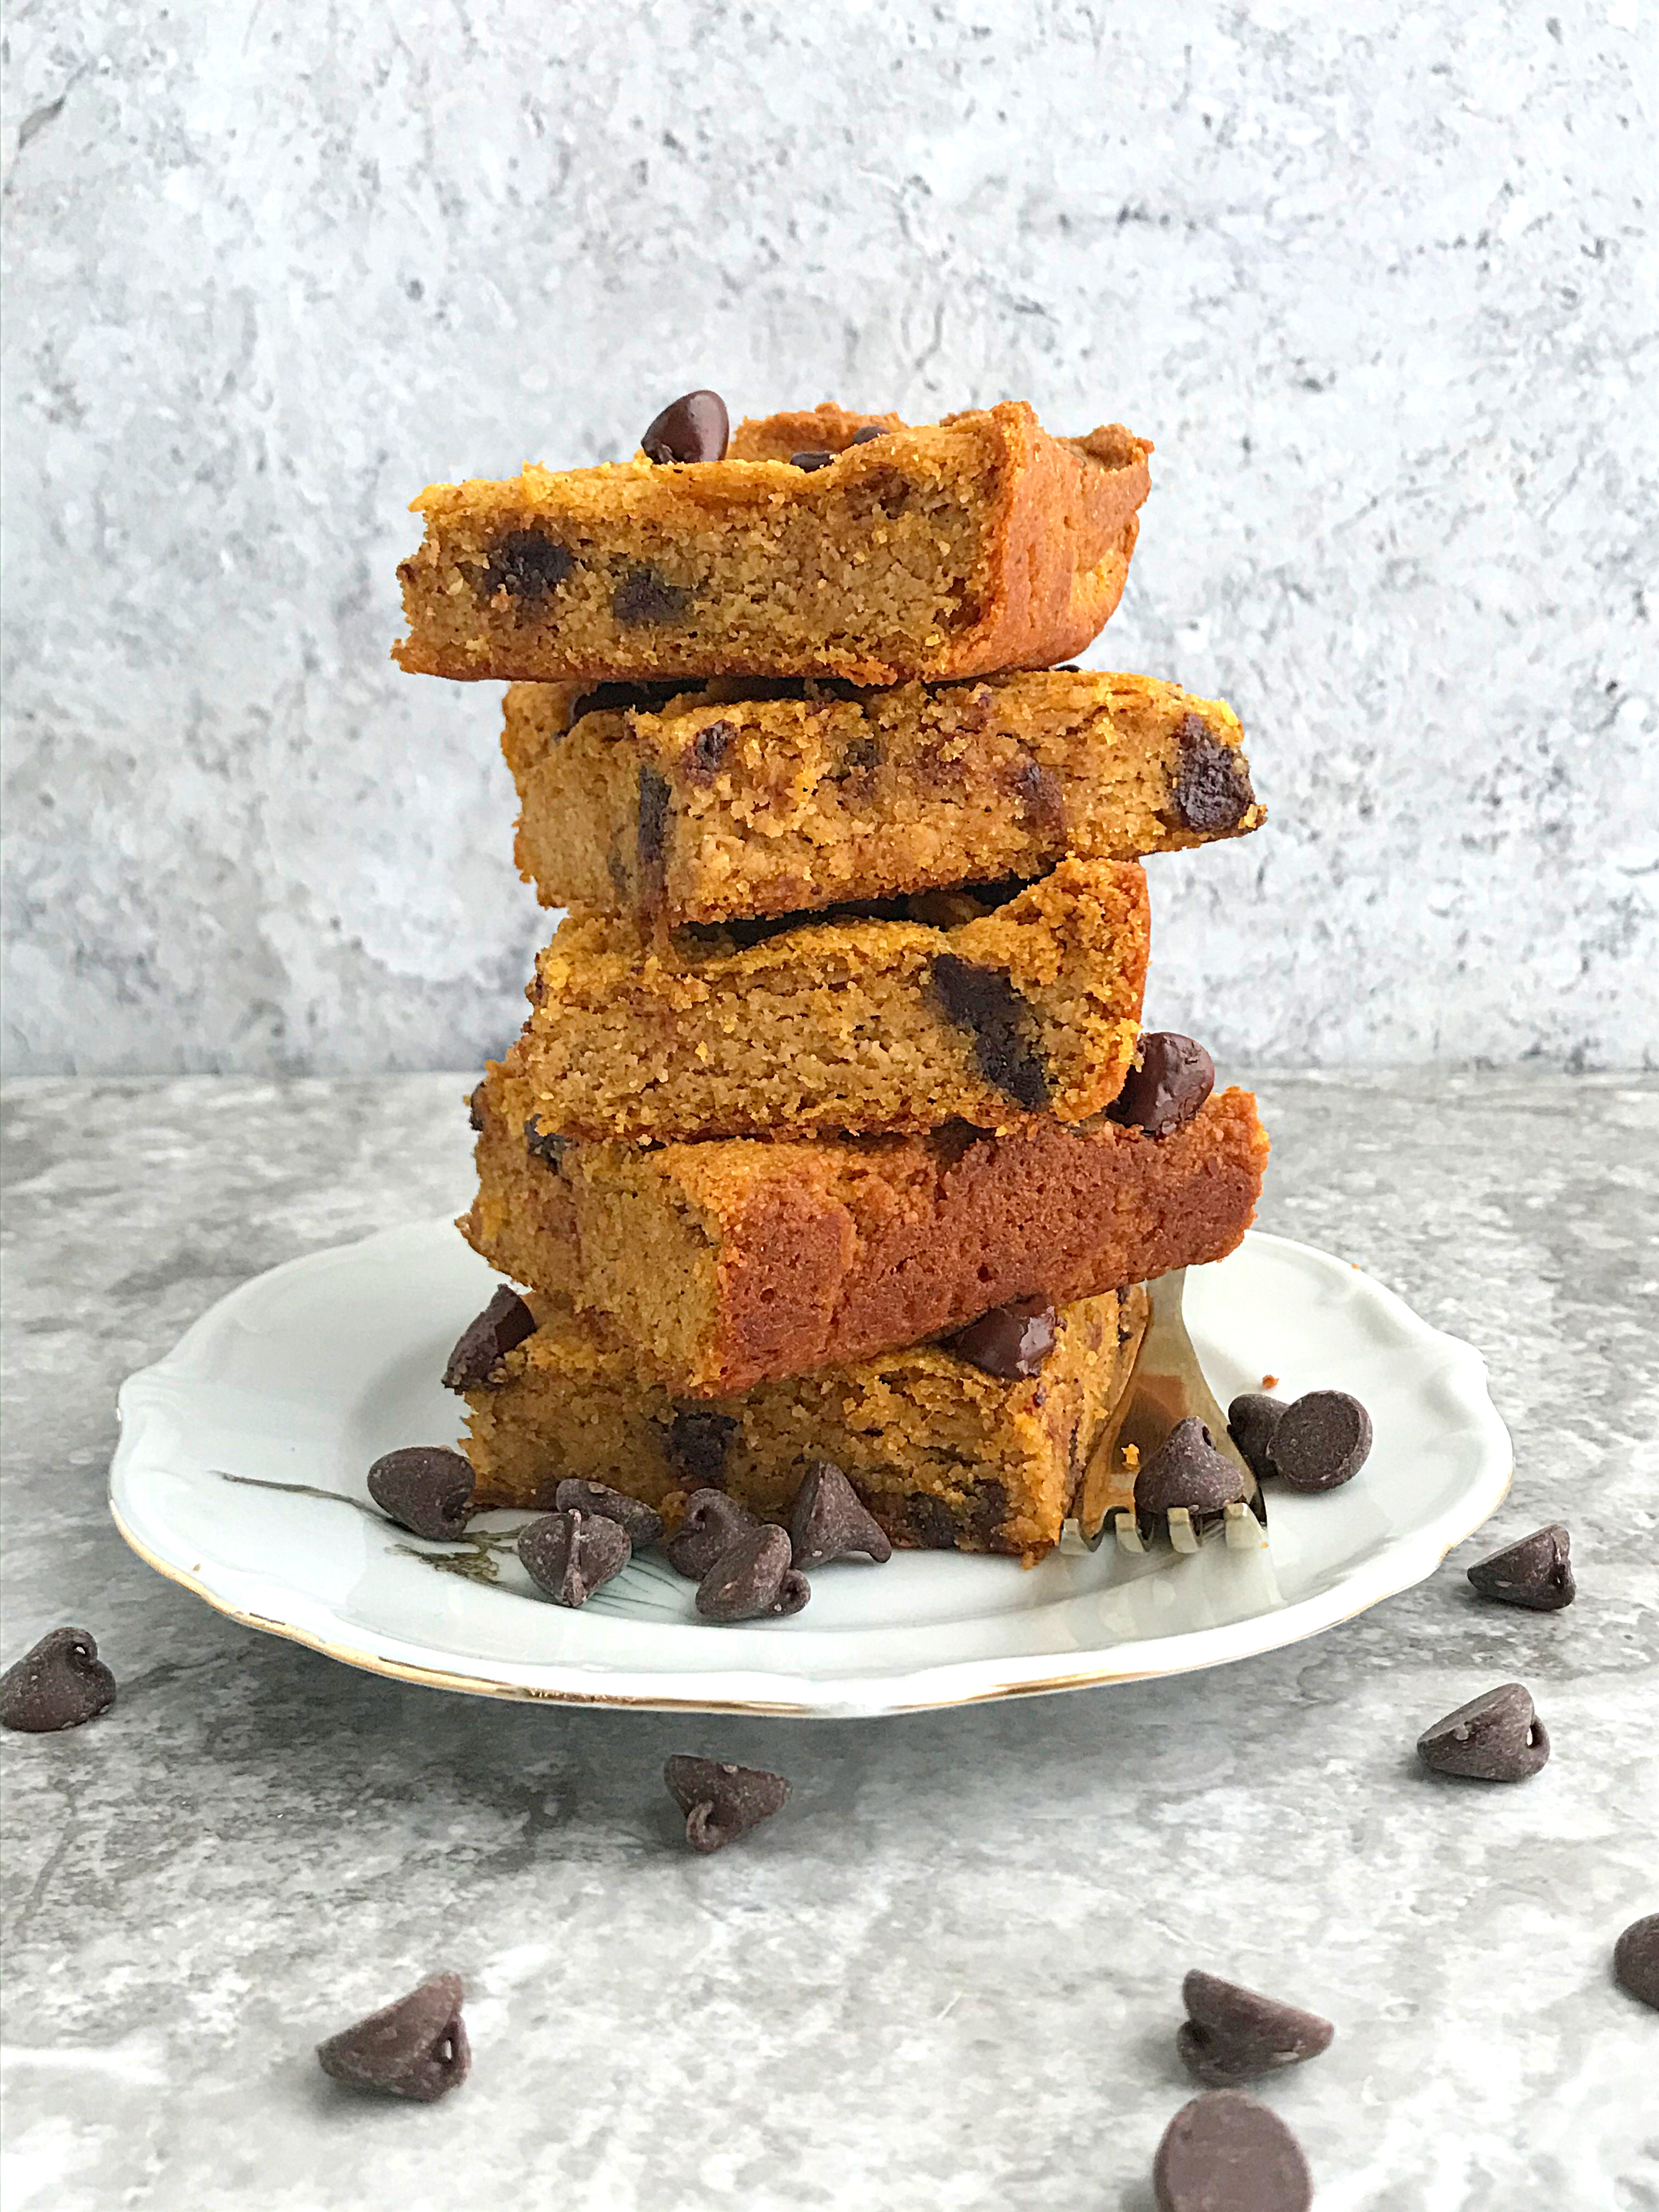 5 Keto Pumpkin chocolate chip blondies stacked in a plate with chocolate chips tossed on the table